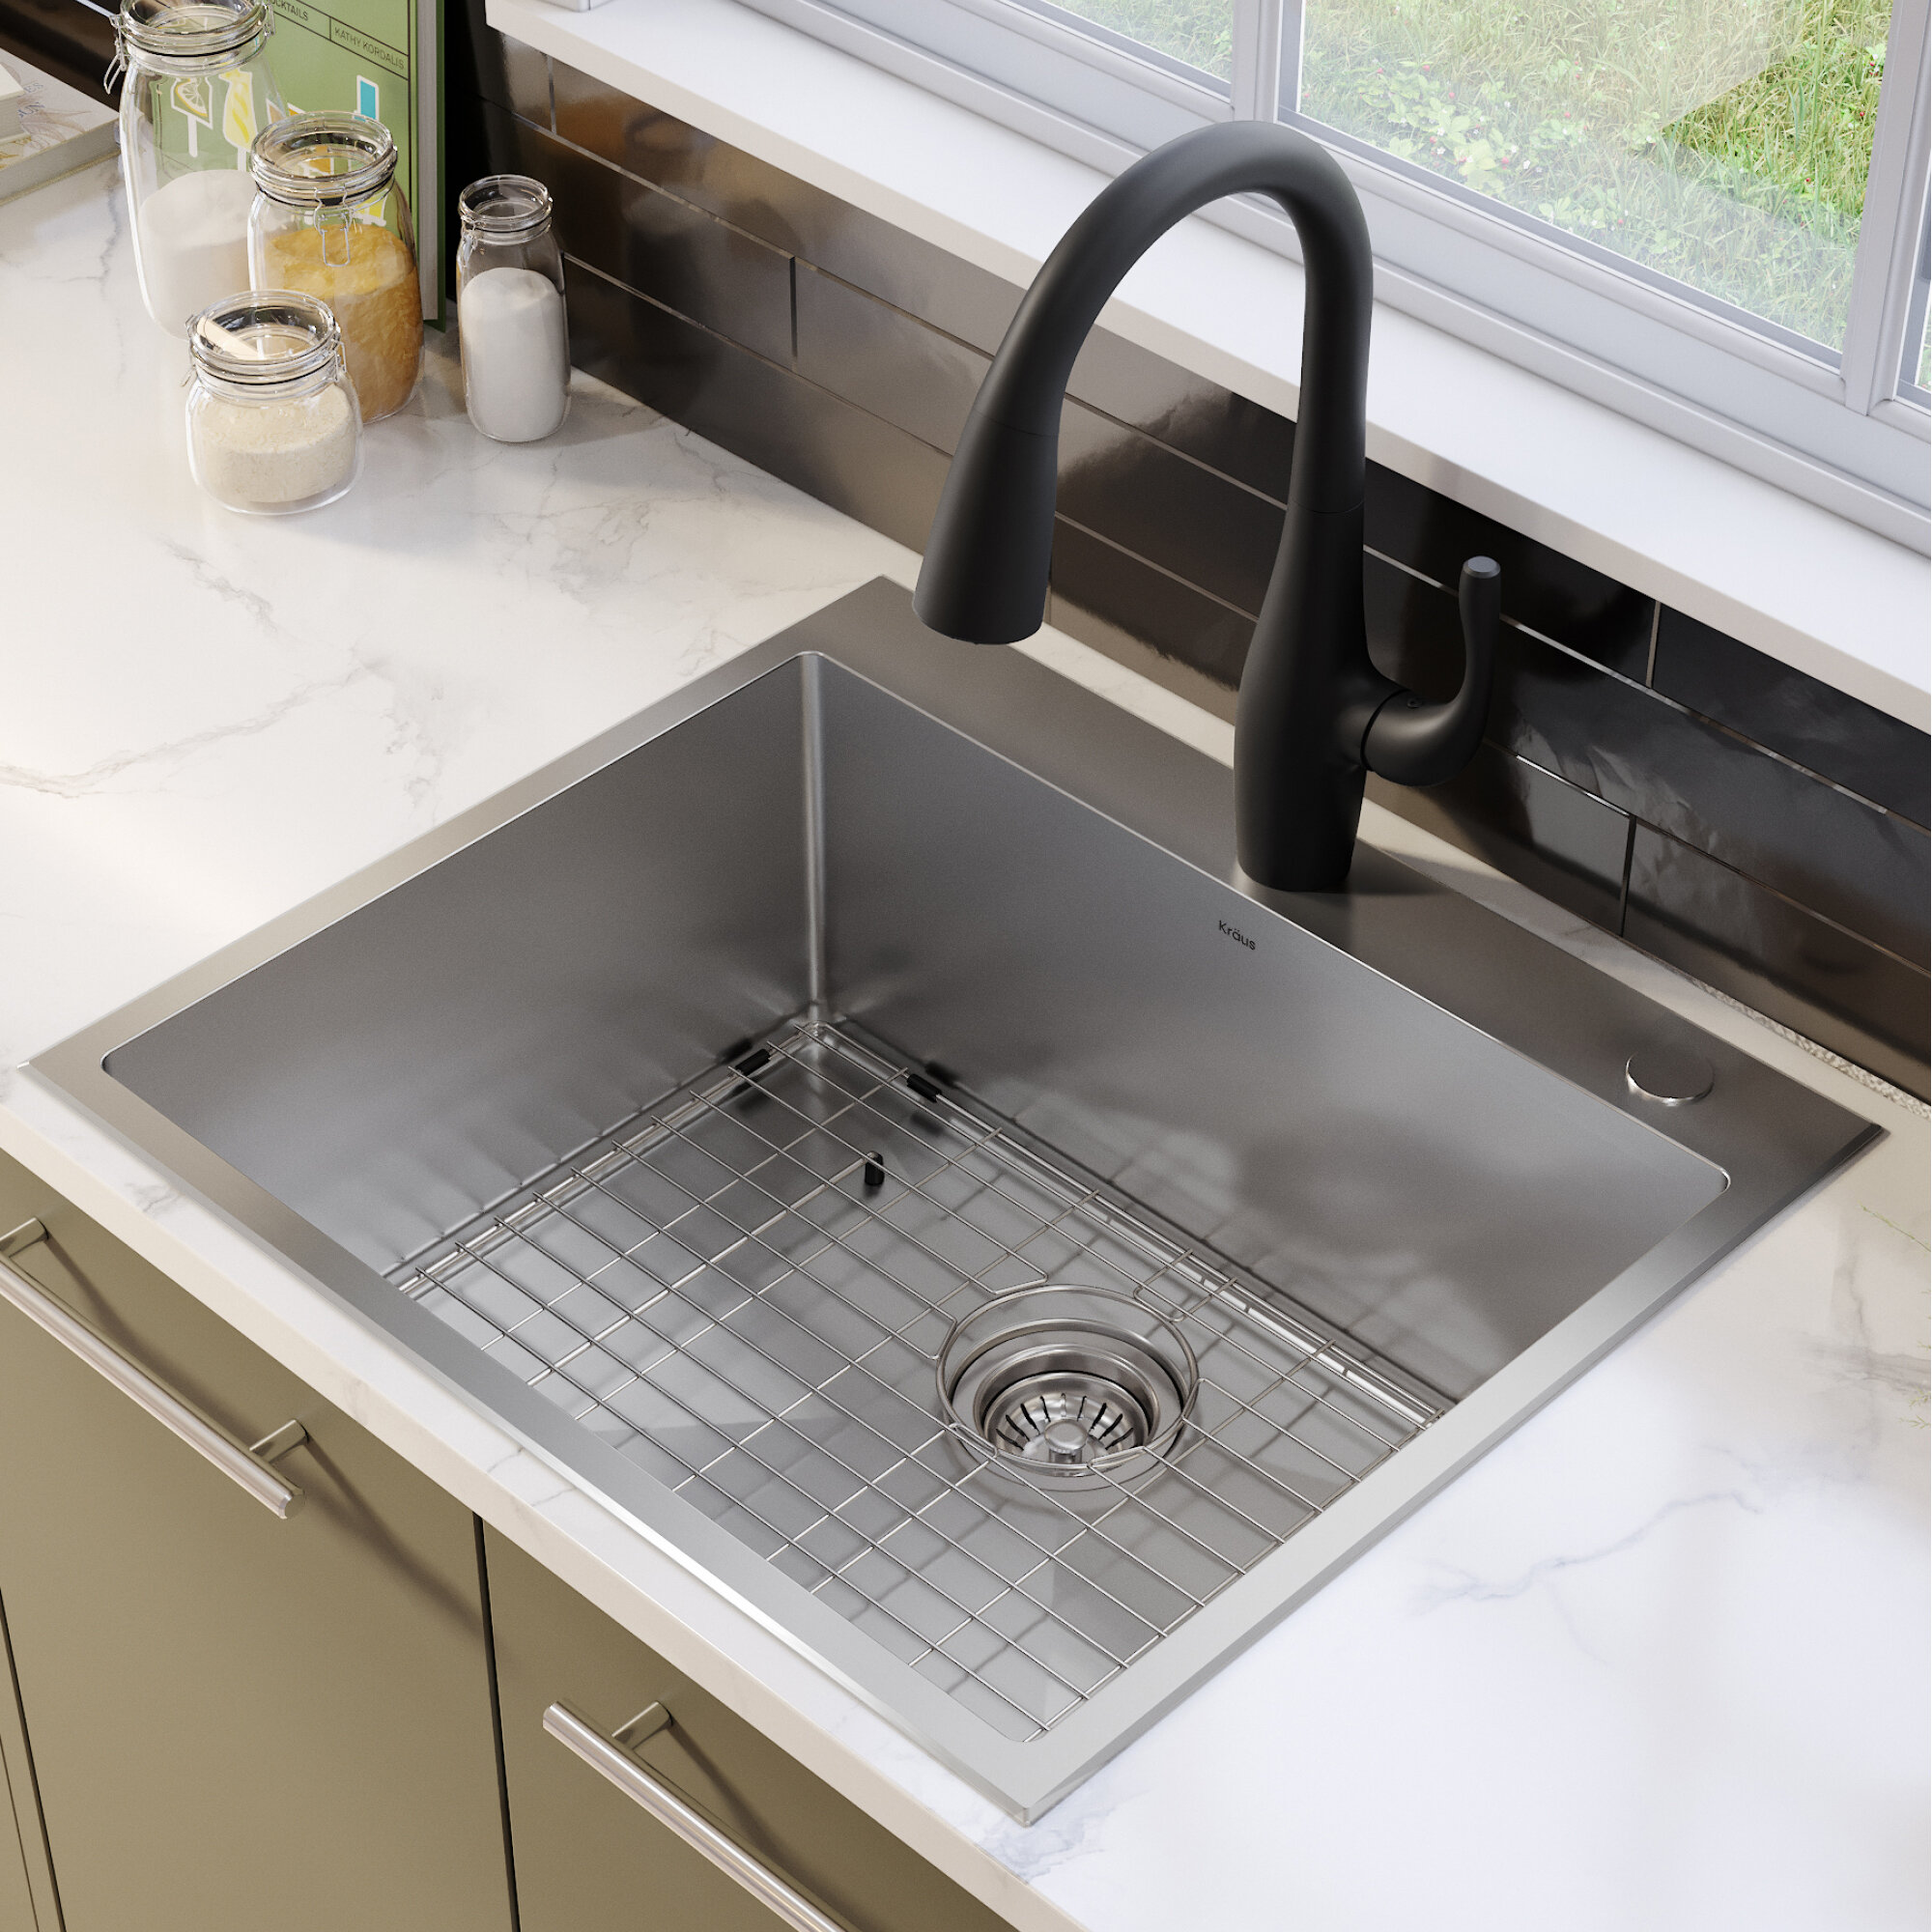 Kraus Standart Pro 16 Gauge 25 X 22 Drop In Kitchen Sink With Bottom Grid Drain Assembly And Drain Cap Reviews Wayfair